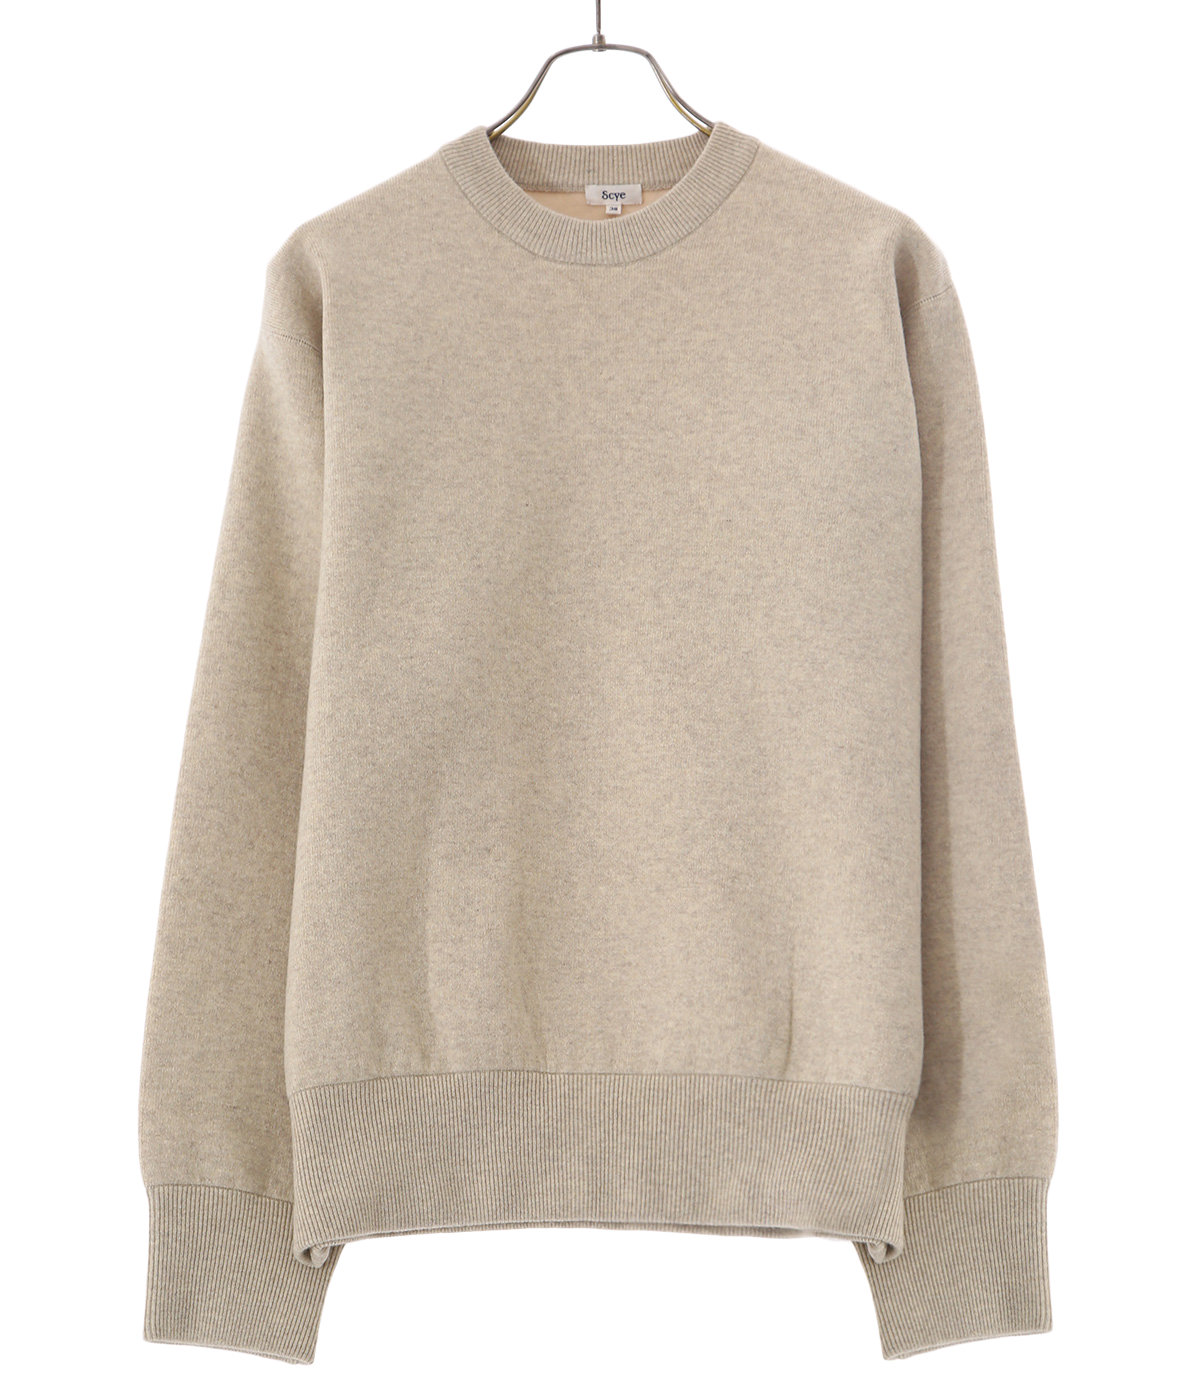 Double -Faced Knit Sweat Shirt